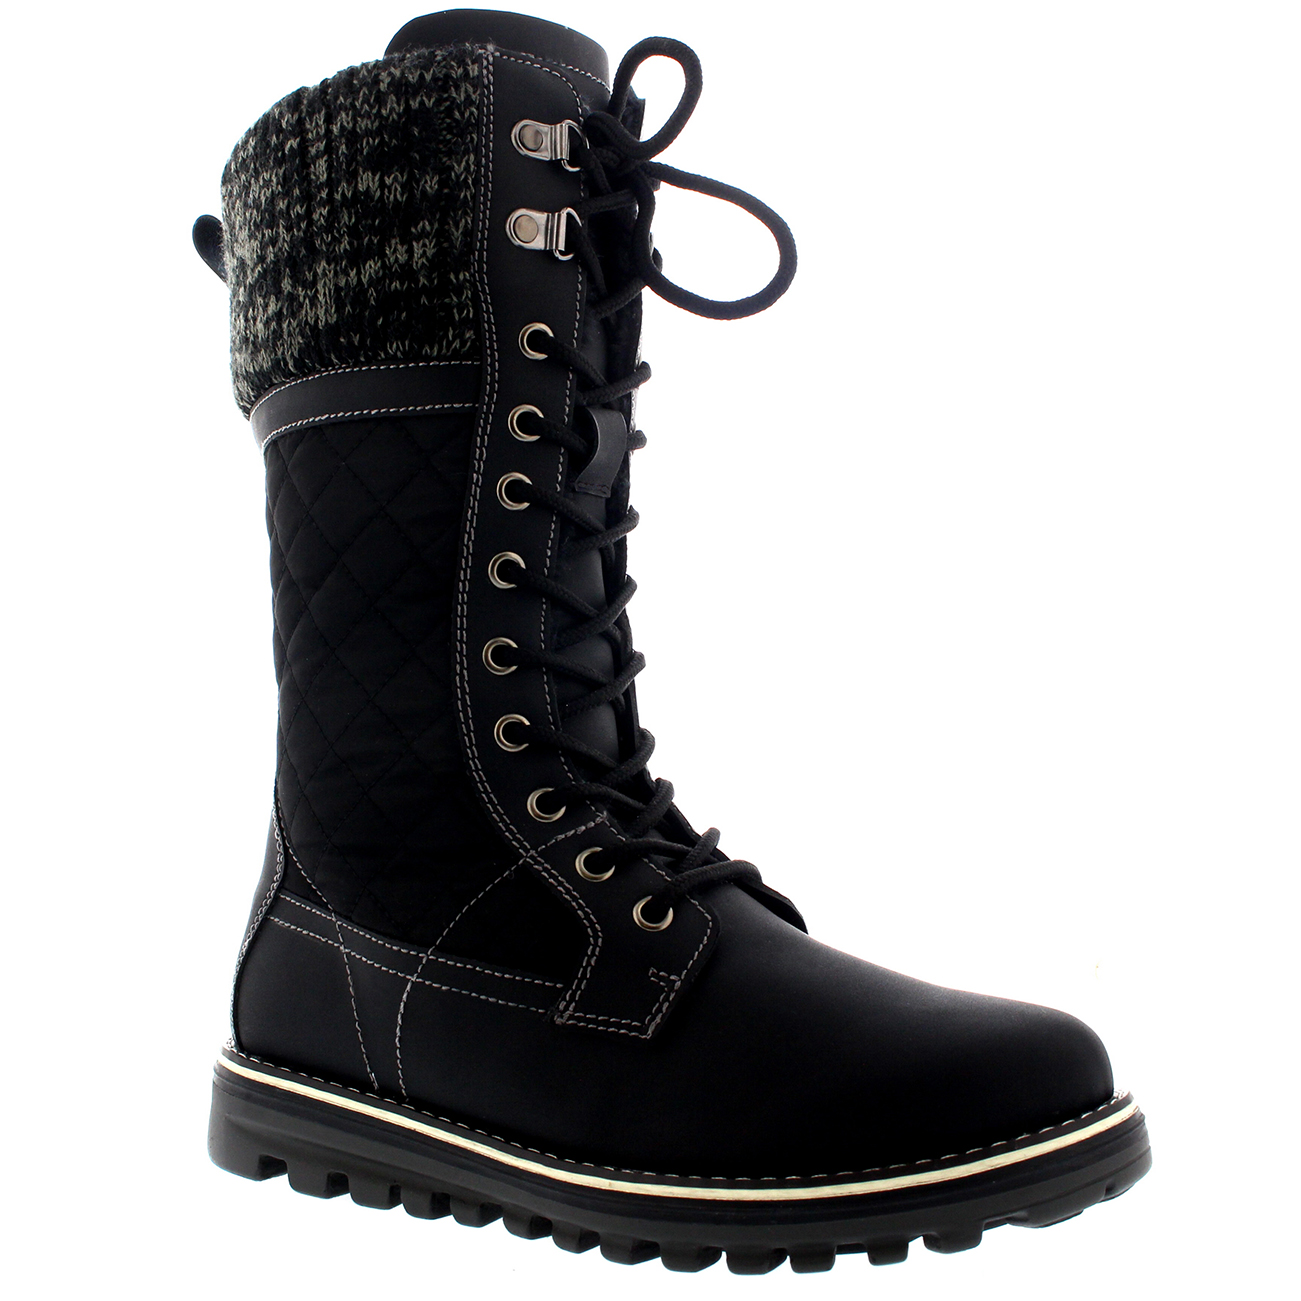 Womens Classic Winter Snow Outdoor Warm Durable Mid Calf Snow Boots